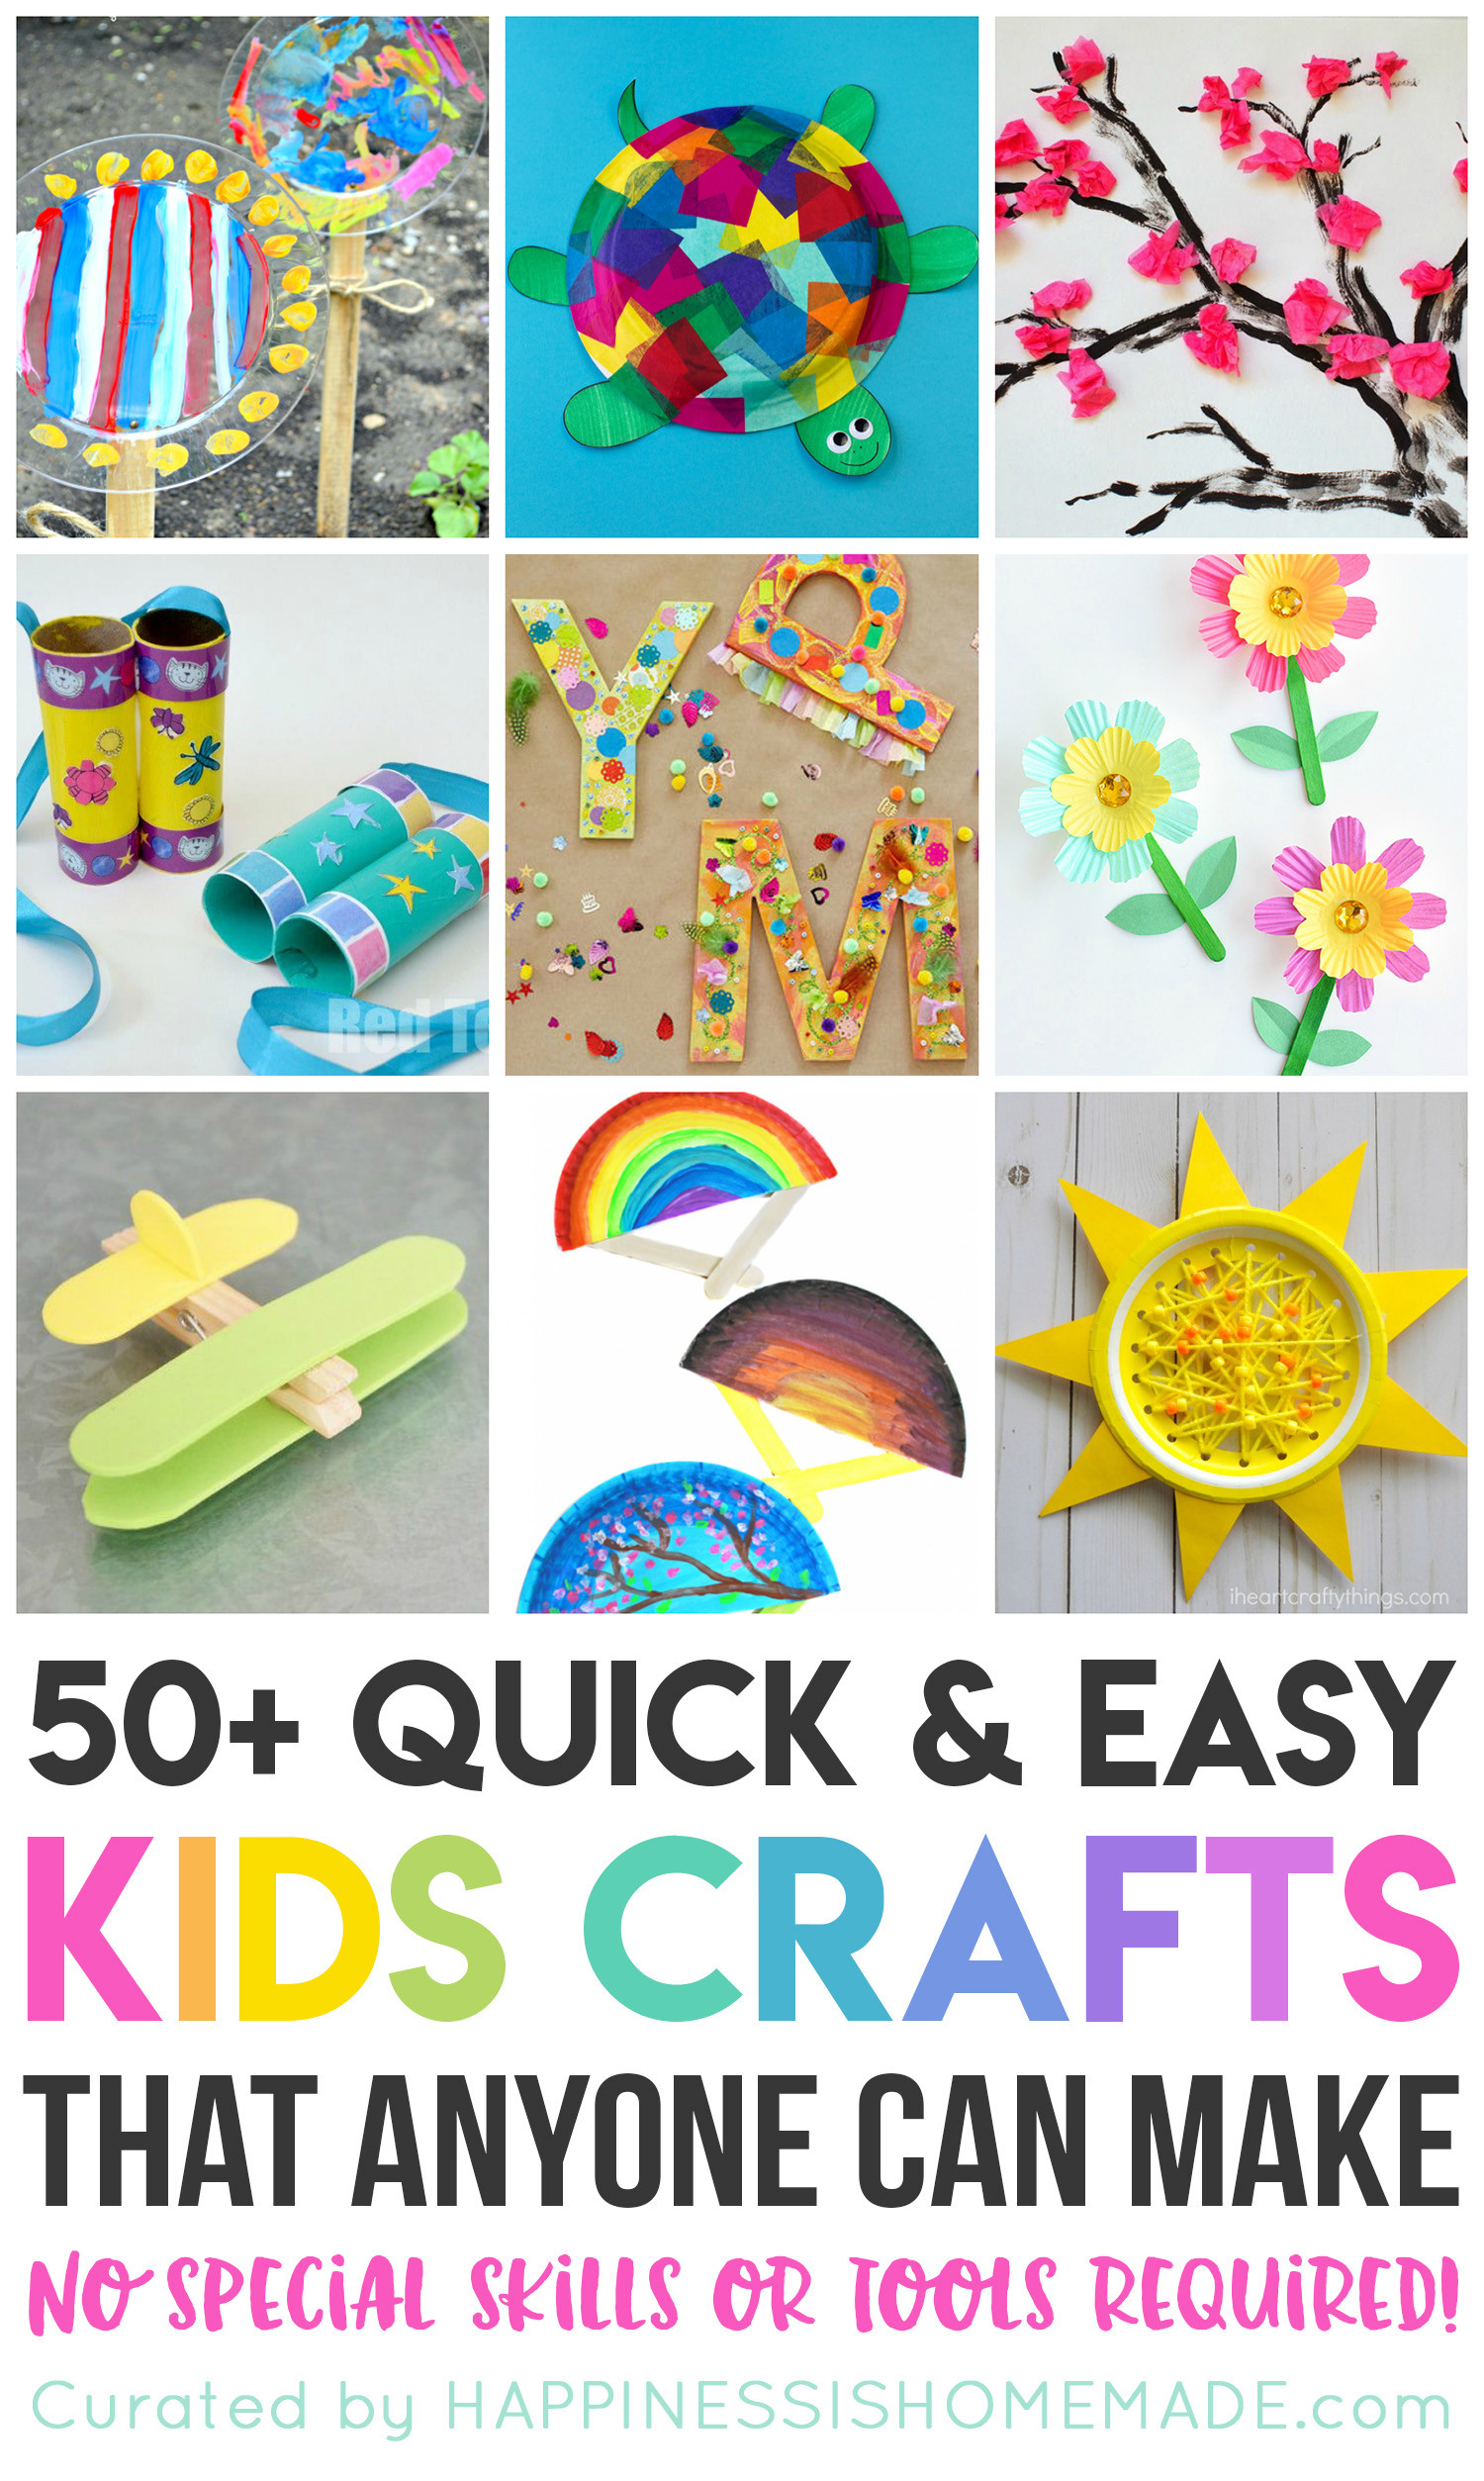 Best ideas about Easy Craft Projects For Kids . Save or Pin Quick & Easy Halloween Crafts for Kids Happiness is Homemade Now.